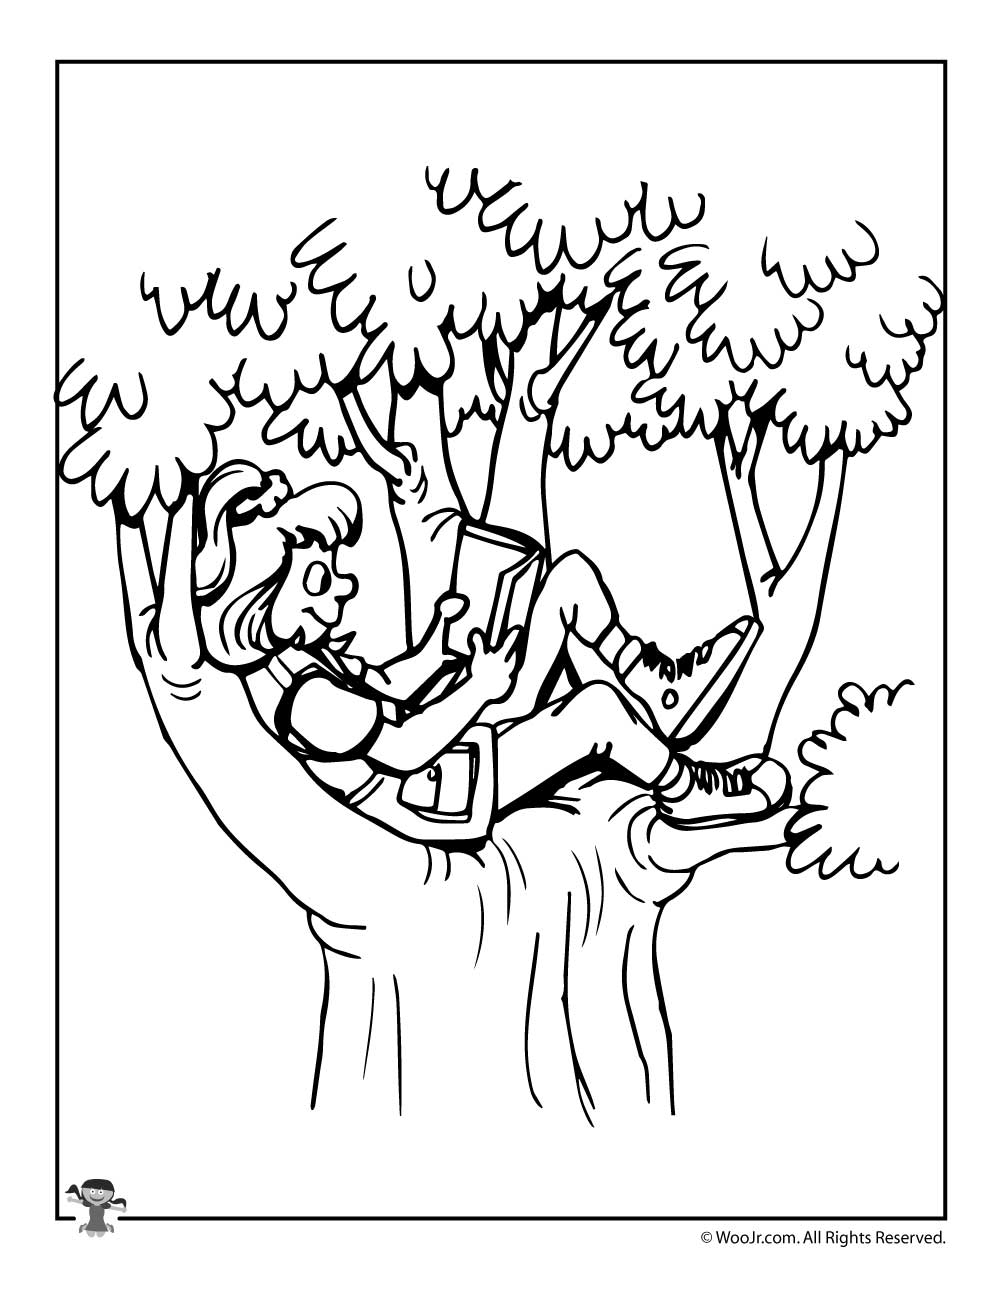 Fun Summer Reading Coloring Page | Woo! Jr. Kids Activities